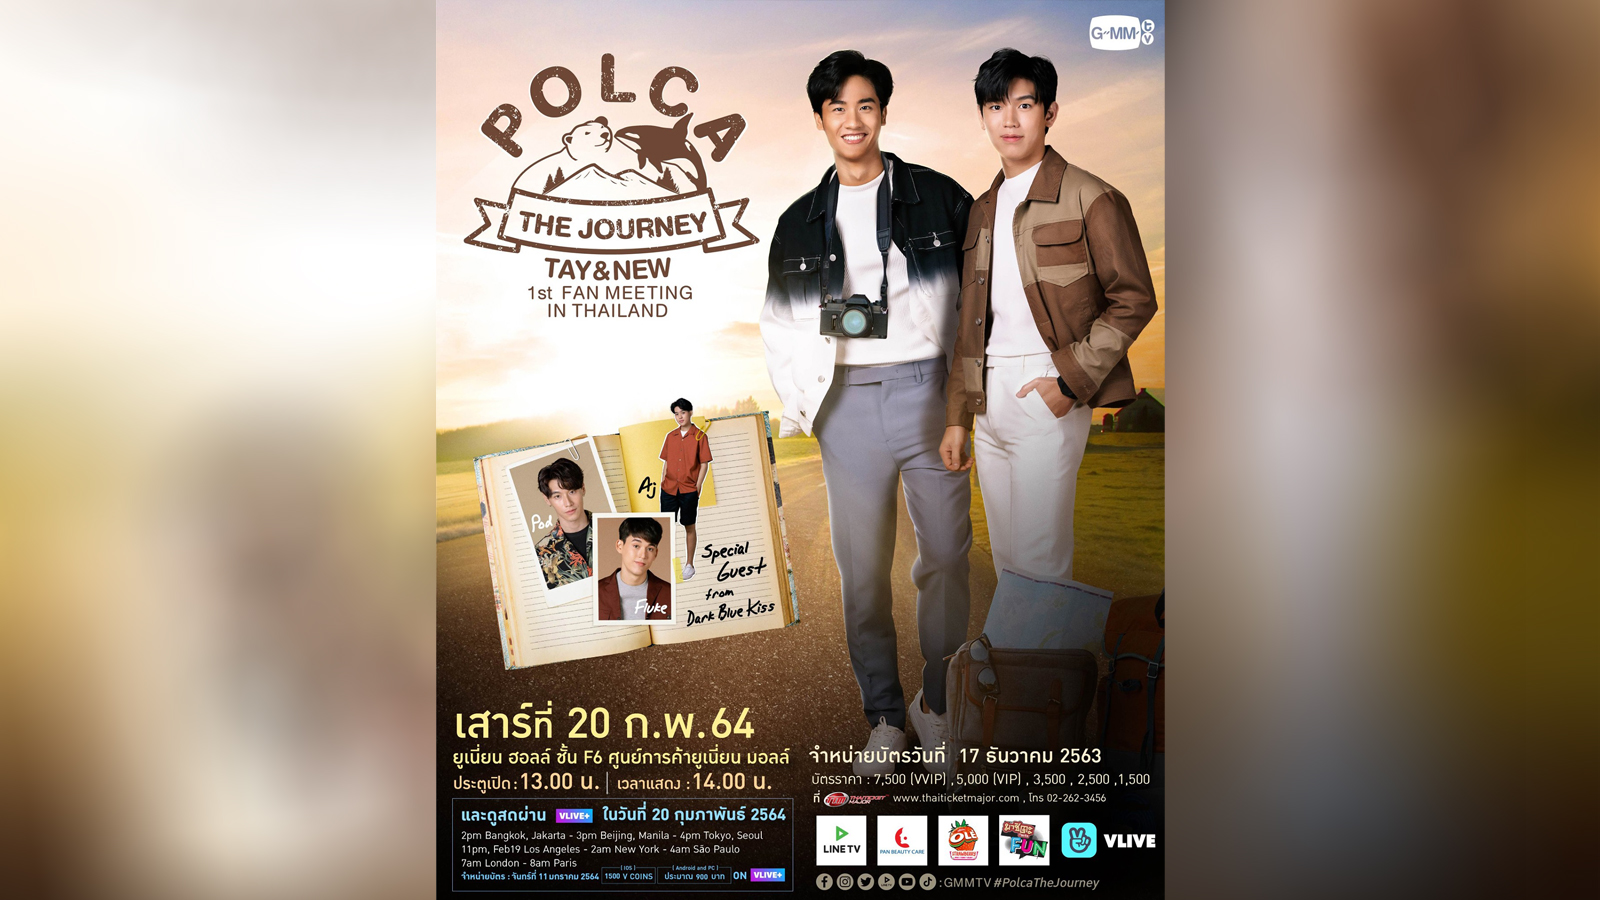 POLCA The Journey TAY&NEW 1st Fan meeting in Thailand